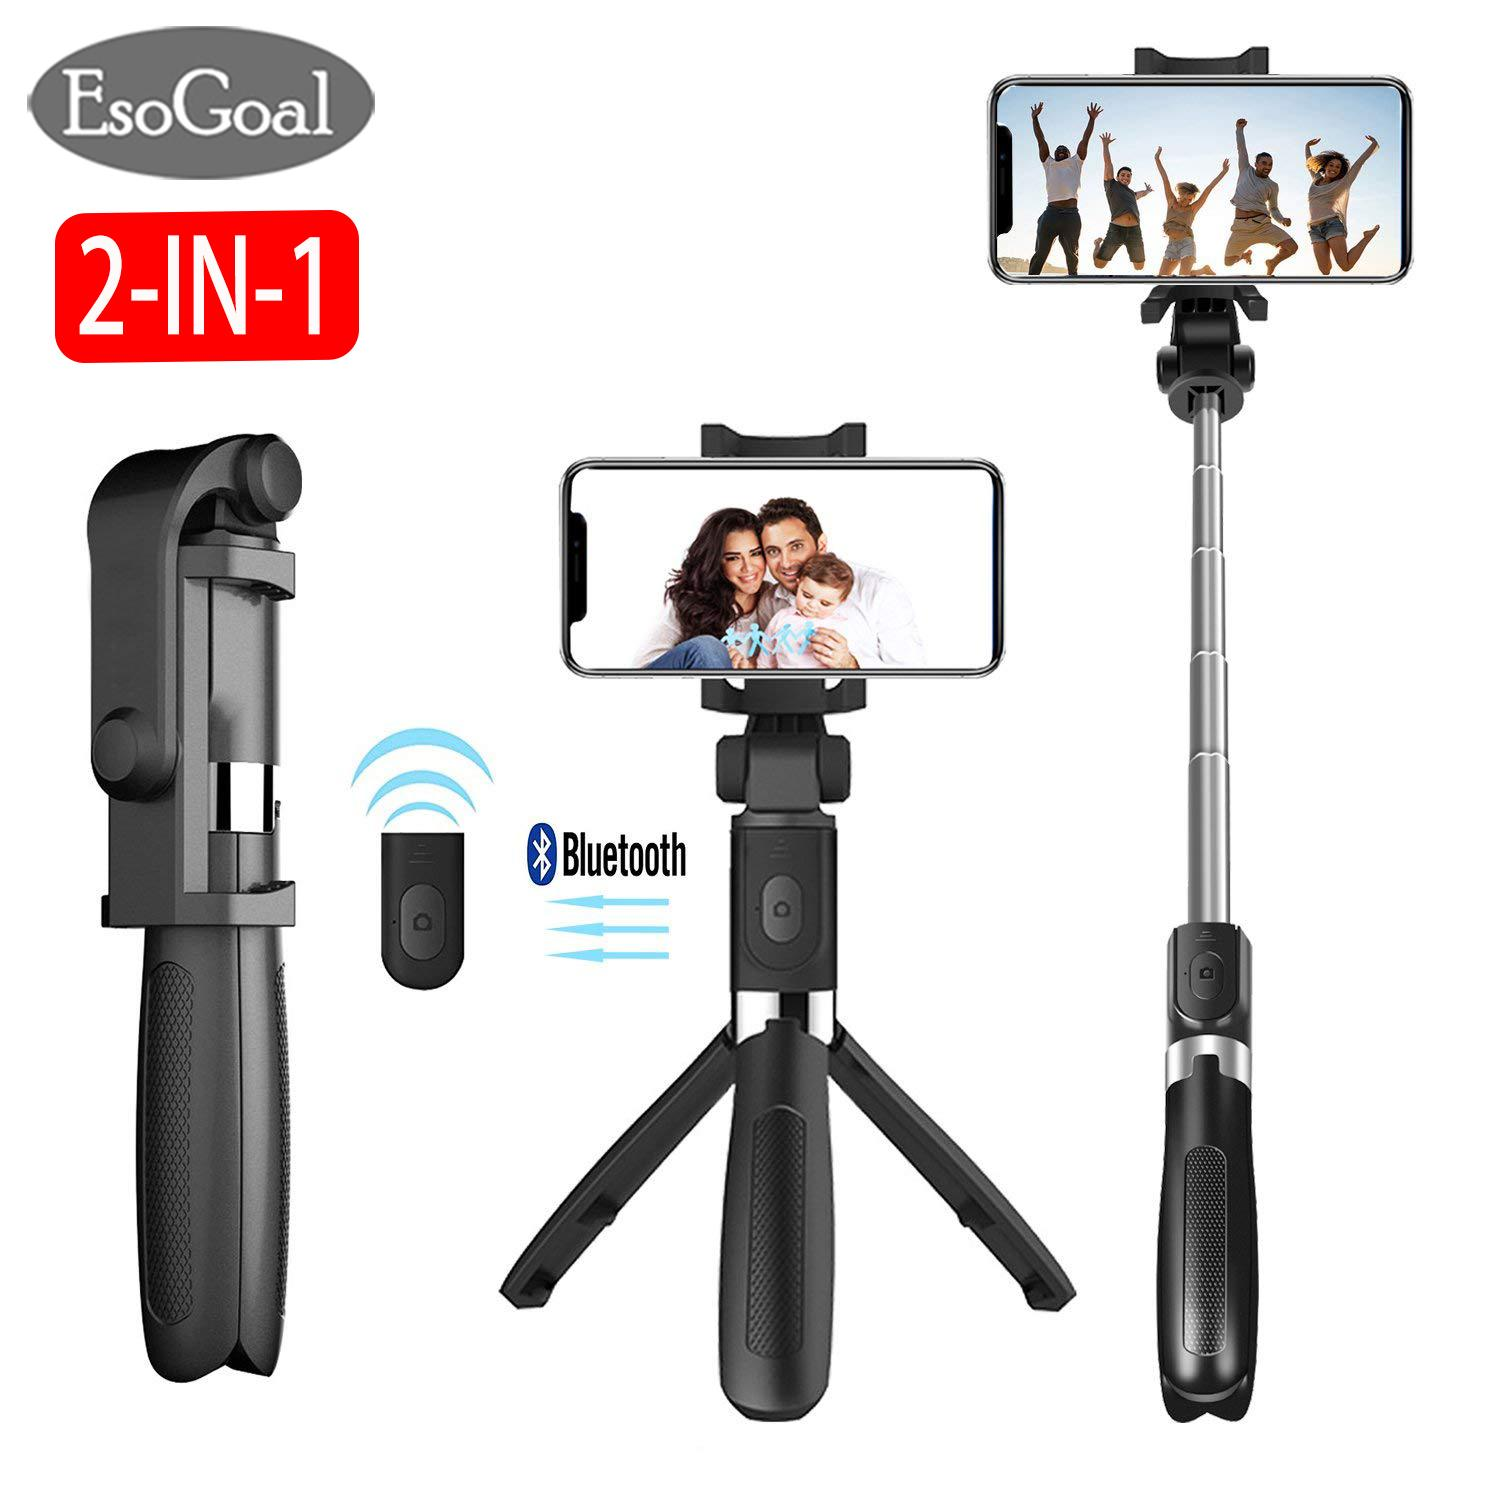 Esogoal 2 In 1 Selfie Stick Tripod Bluetooth Selfie Stand With Remote Shutter Foldable Tripod Monopod By Esogoal.